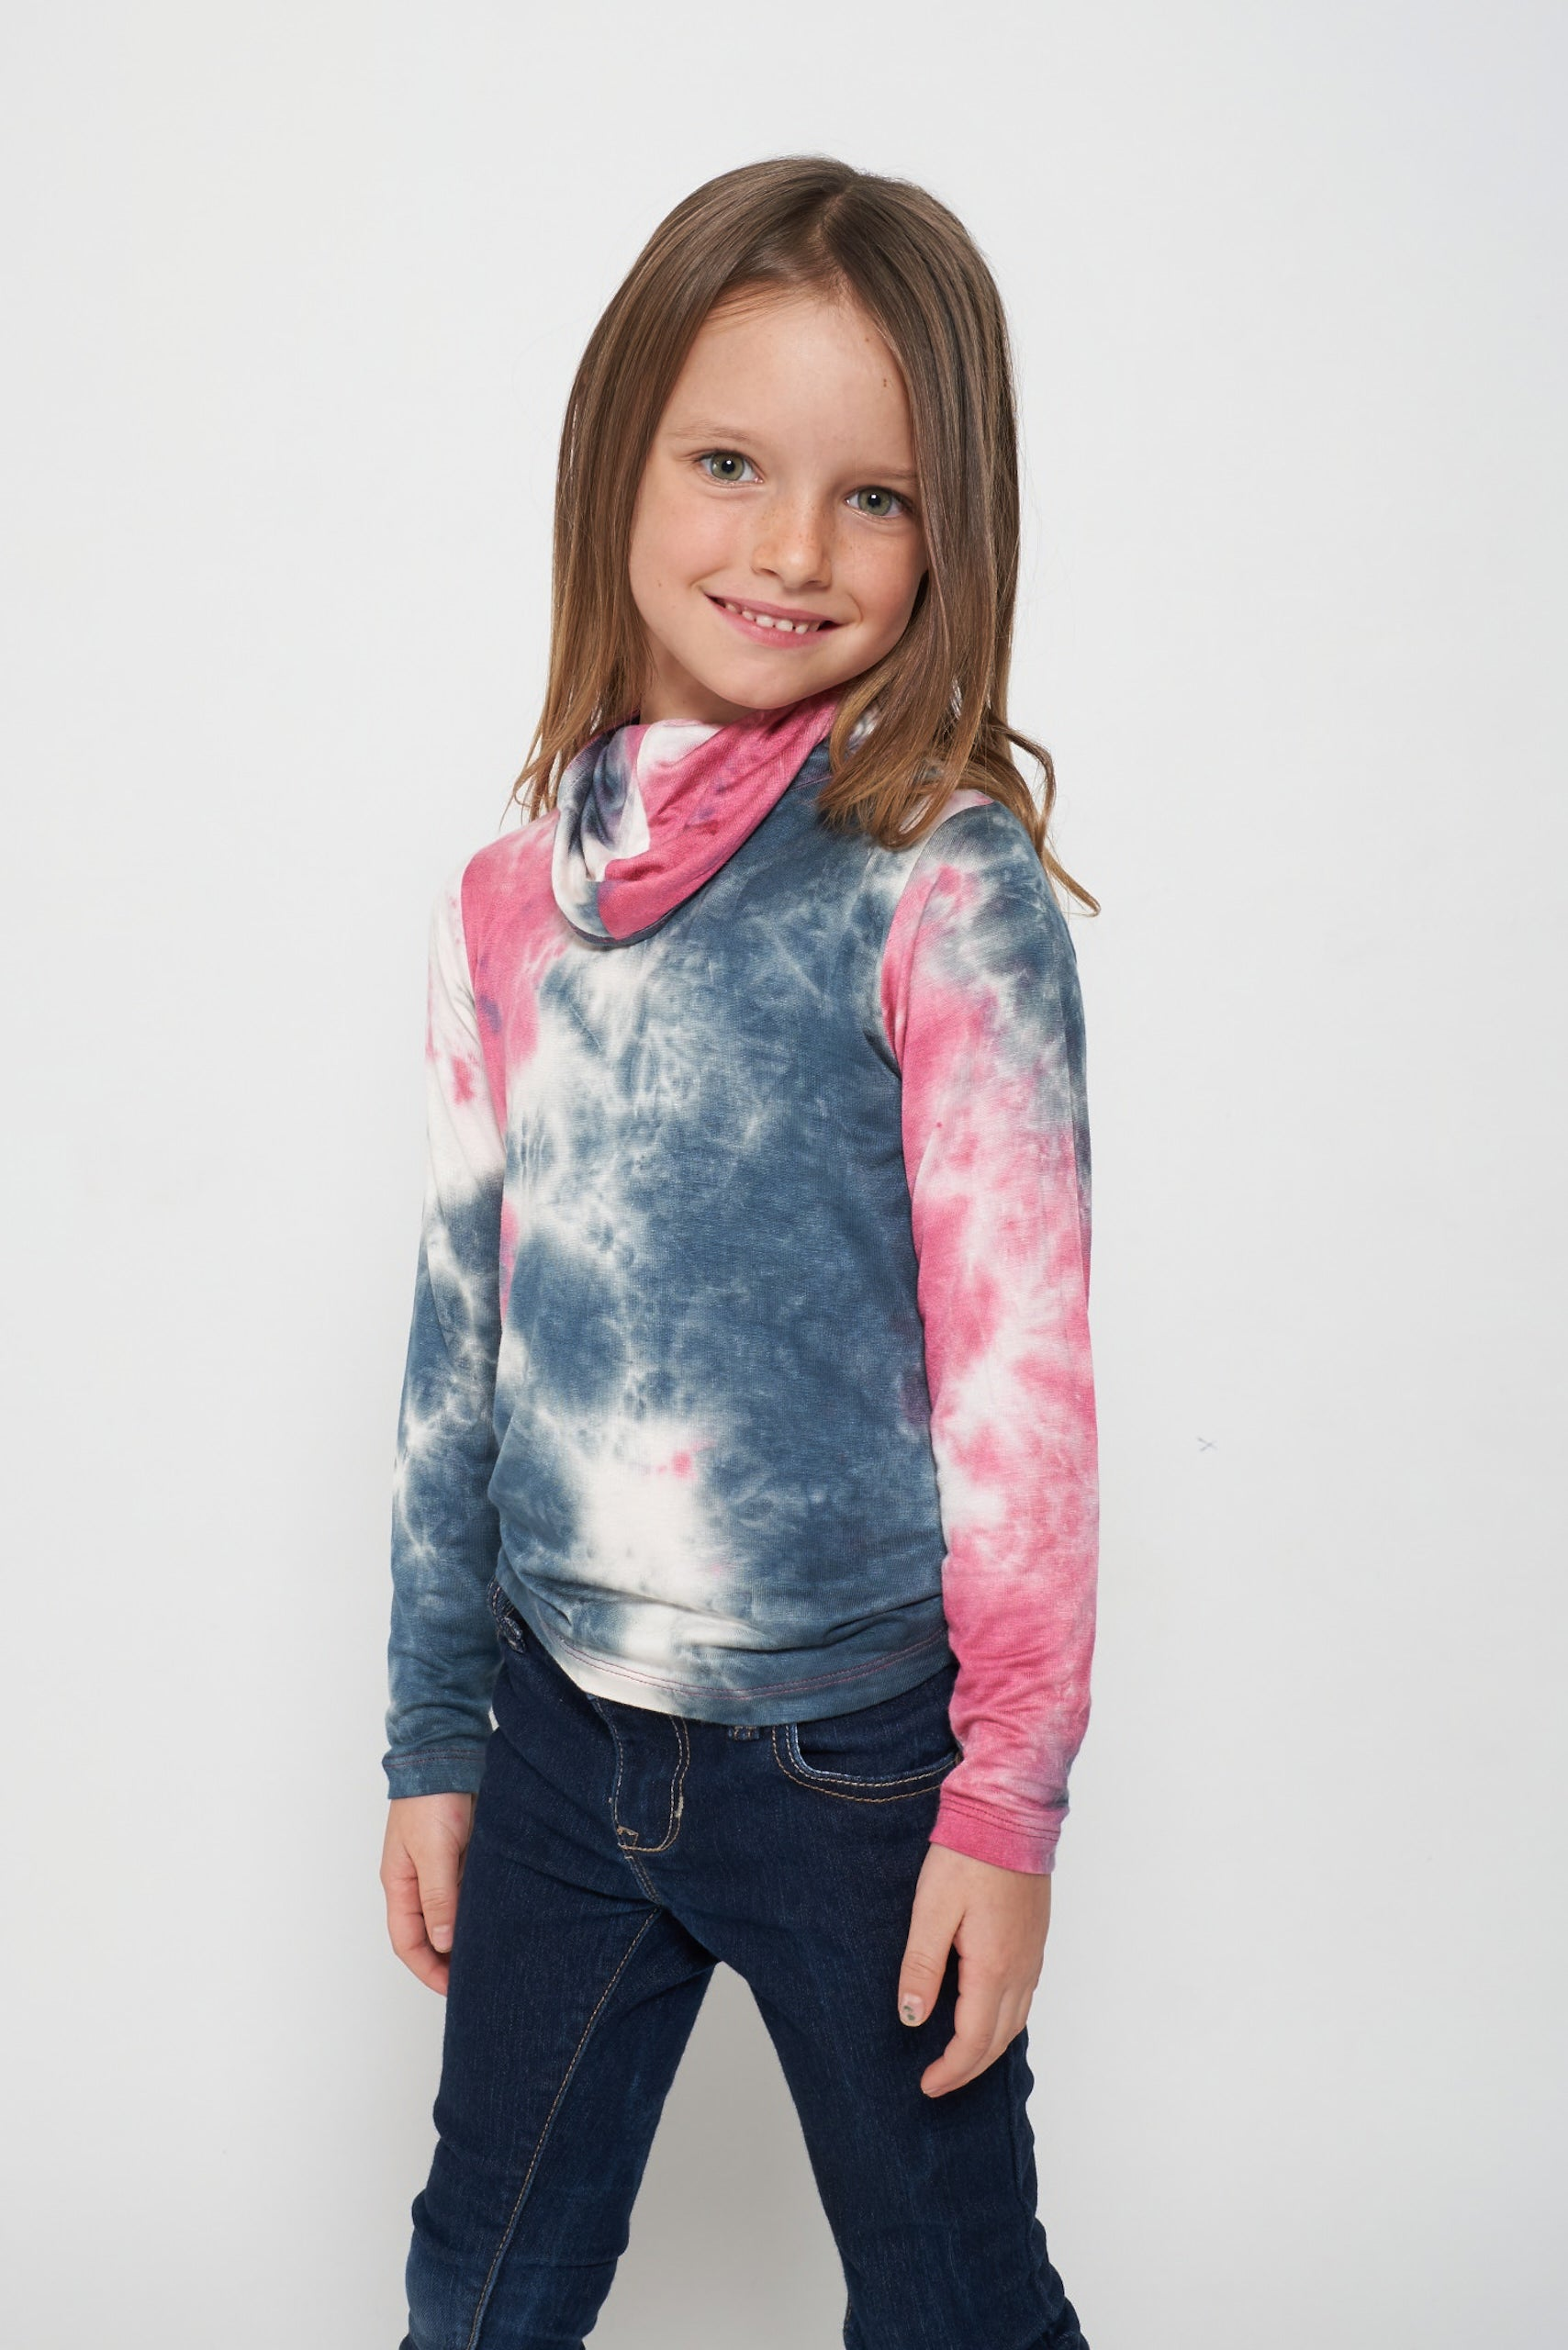 Kids Short Sleeve Pink White Blue Tie-dye #9 Shmask™